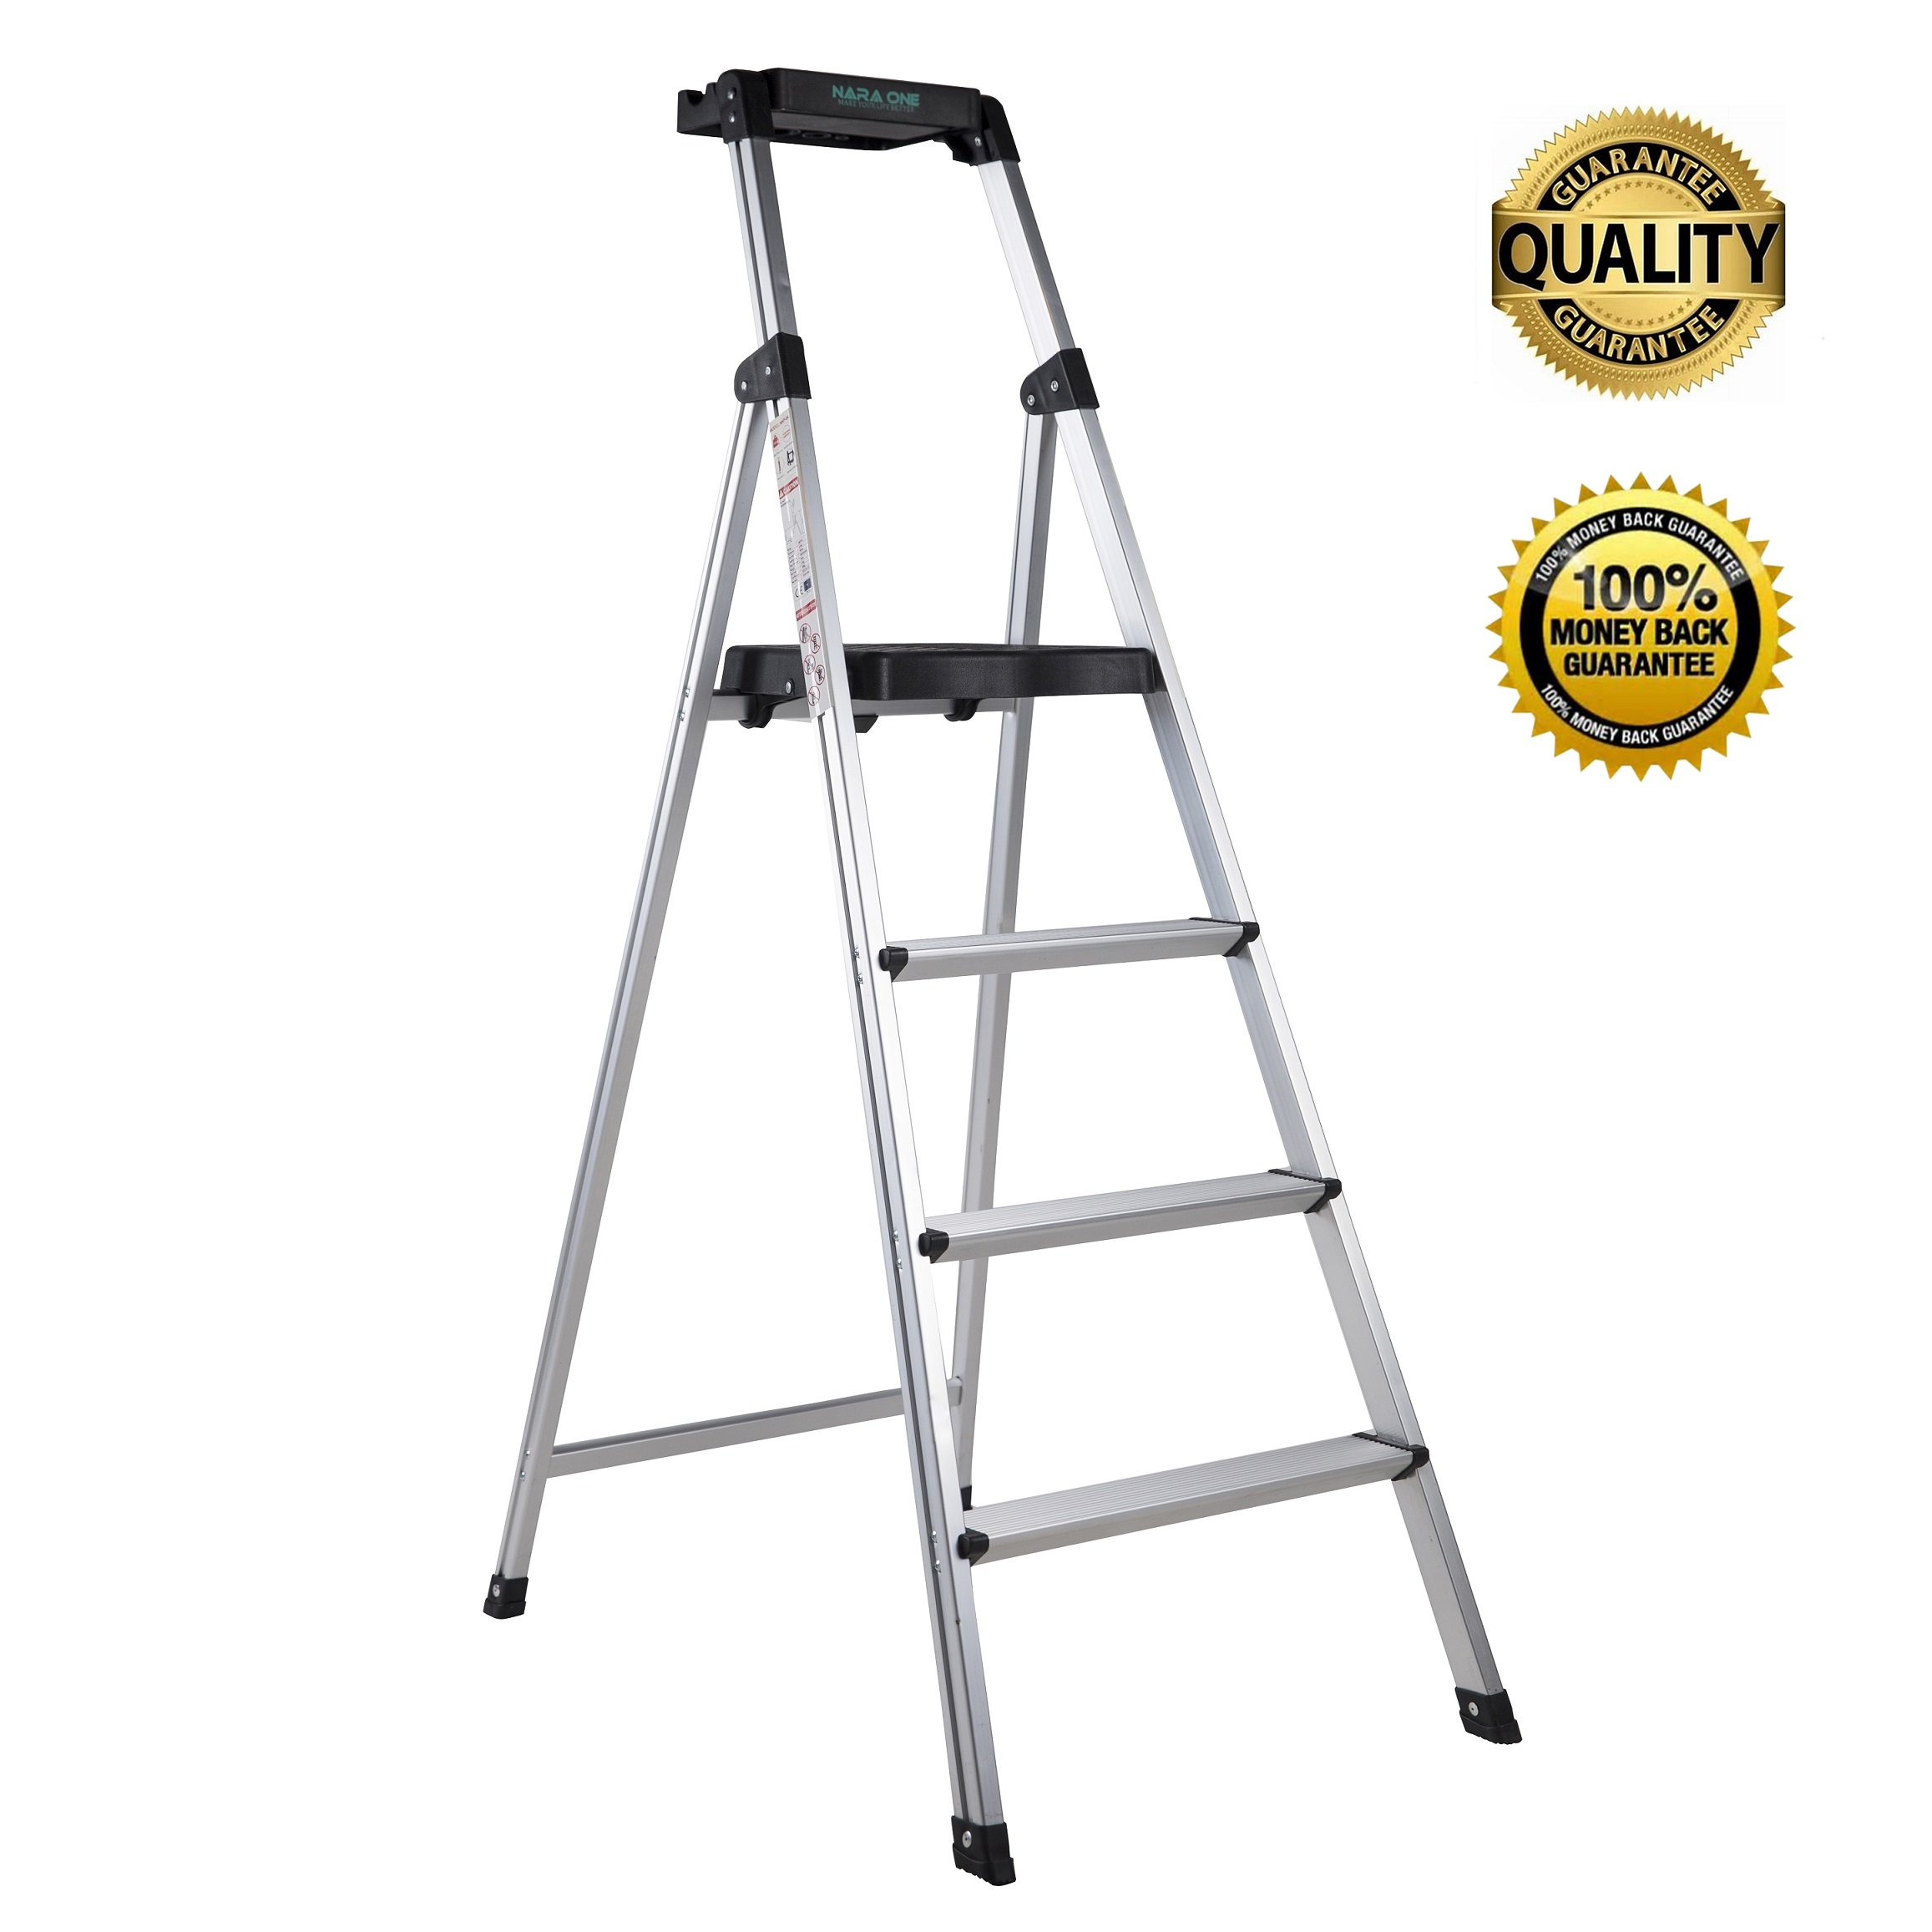 NARA ONE Ultra lightweight 4 Step ladder,Sturdy Aluminum Step Ladders 330 lbs Capacity Fold Up Step Stool with Platform and Project Tray Anti-Slip (Sliver)